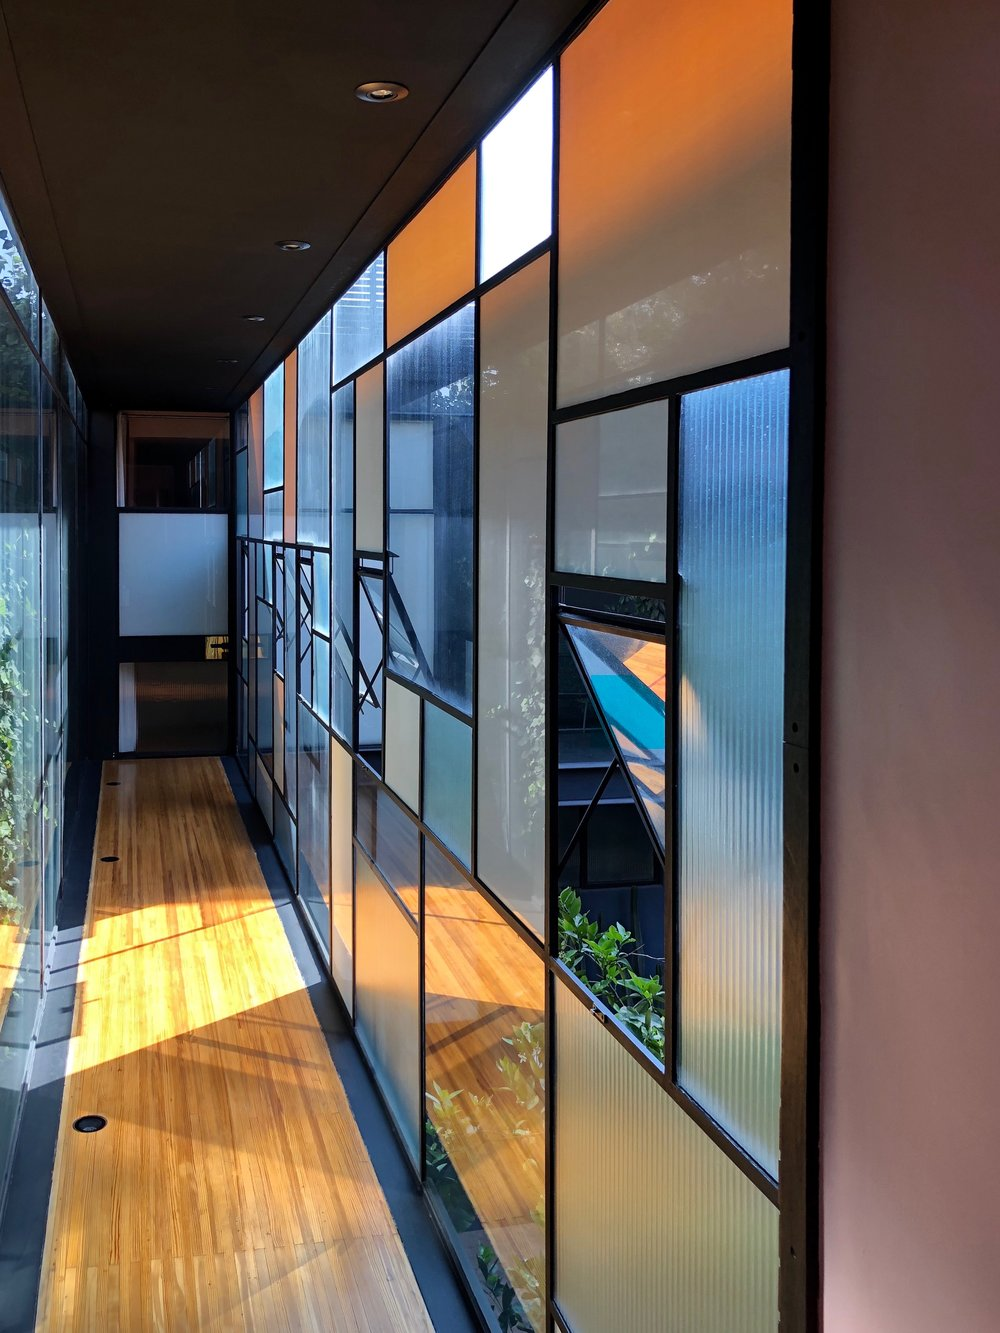 This glass corridor leads from the original house to the new modern wing